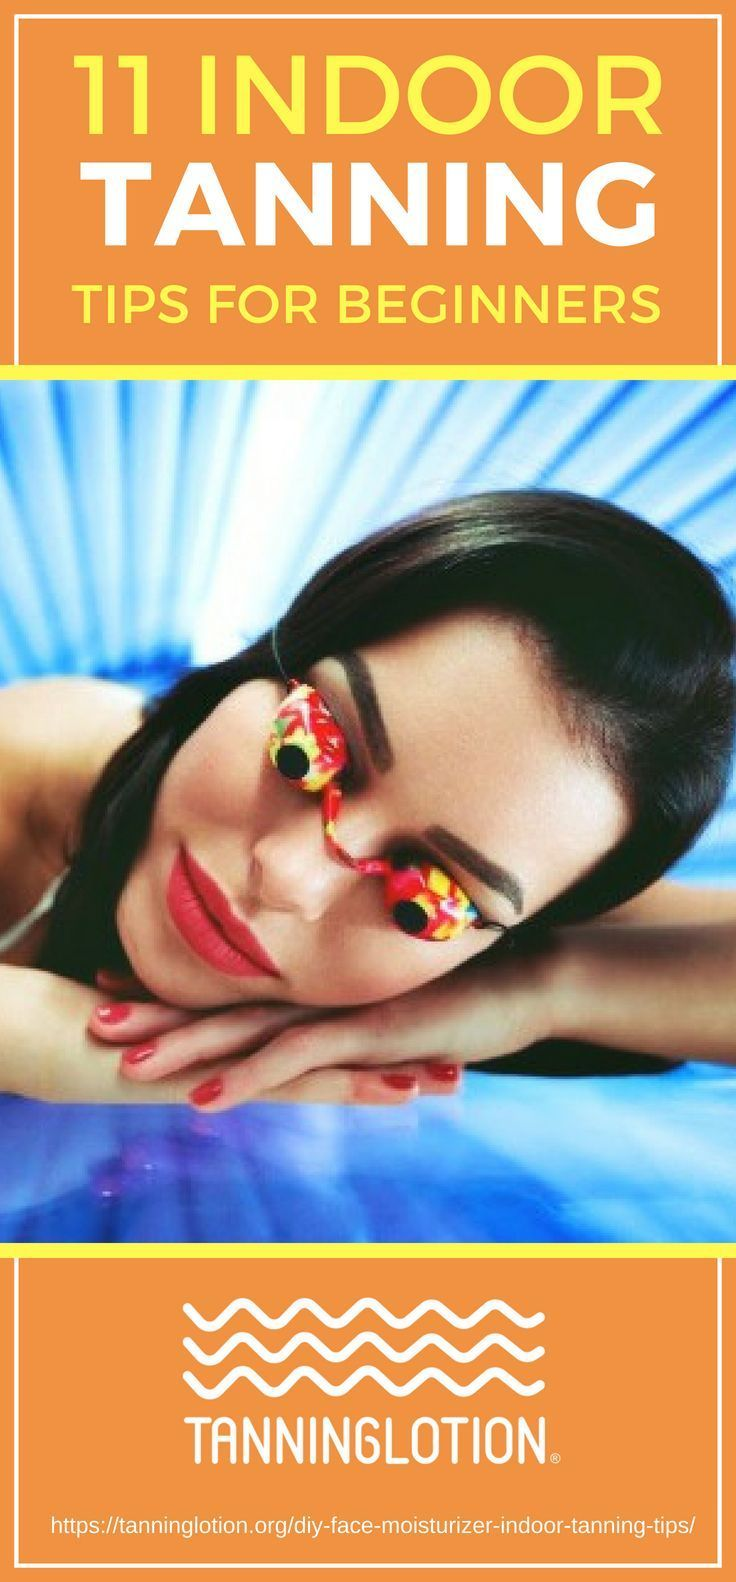 how to use a tanning bed safely